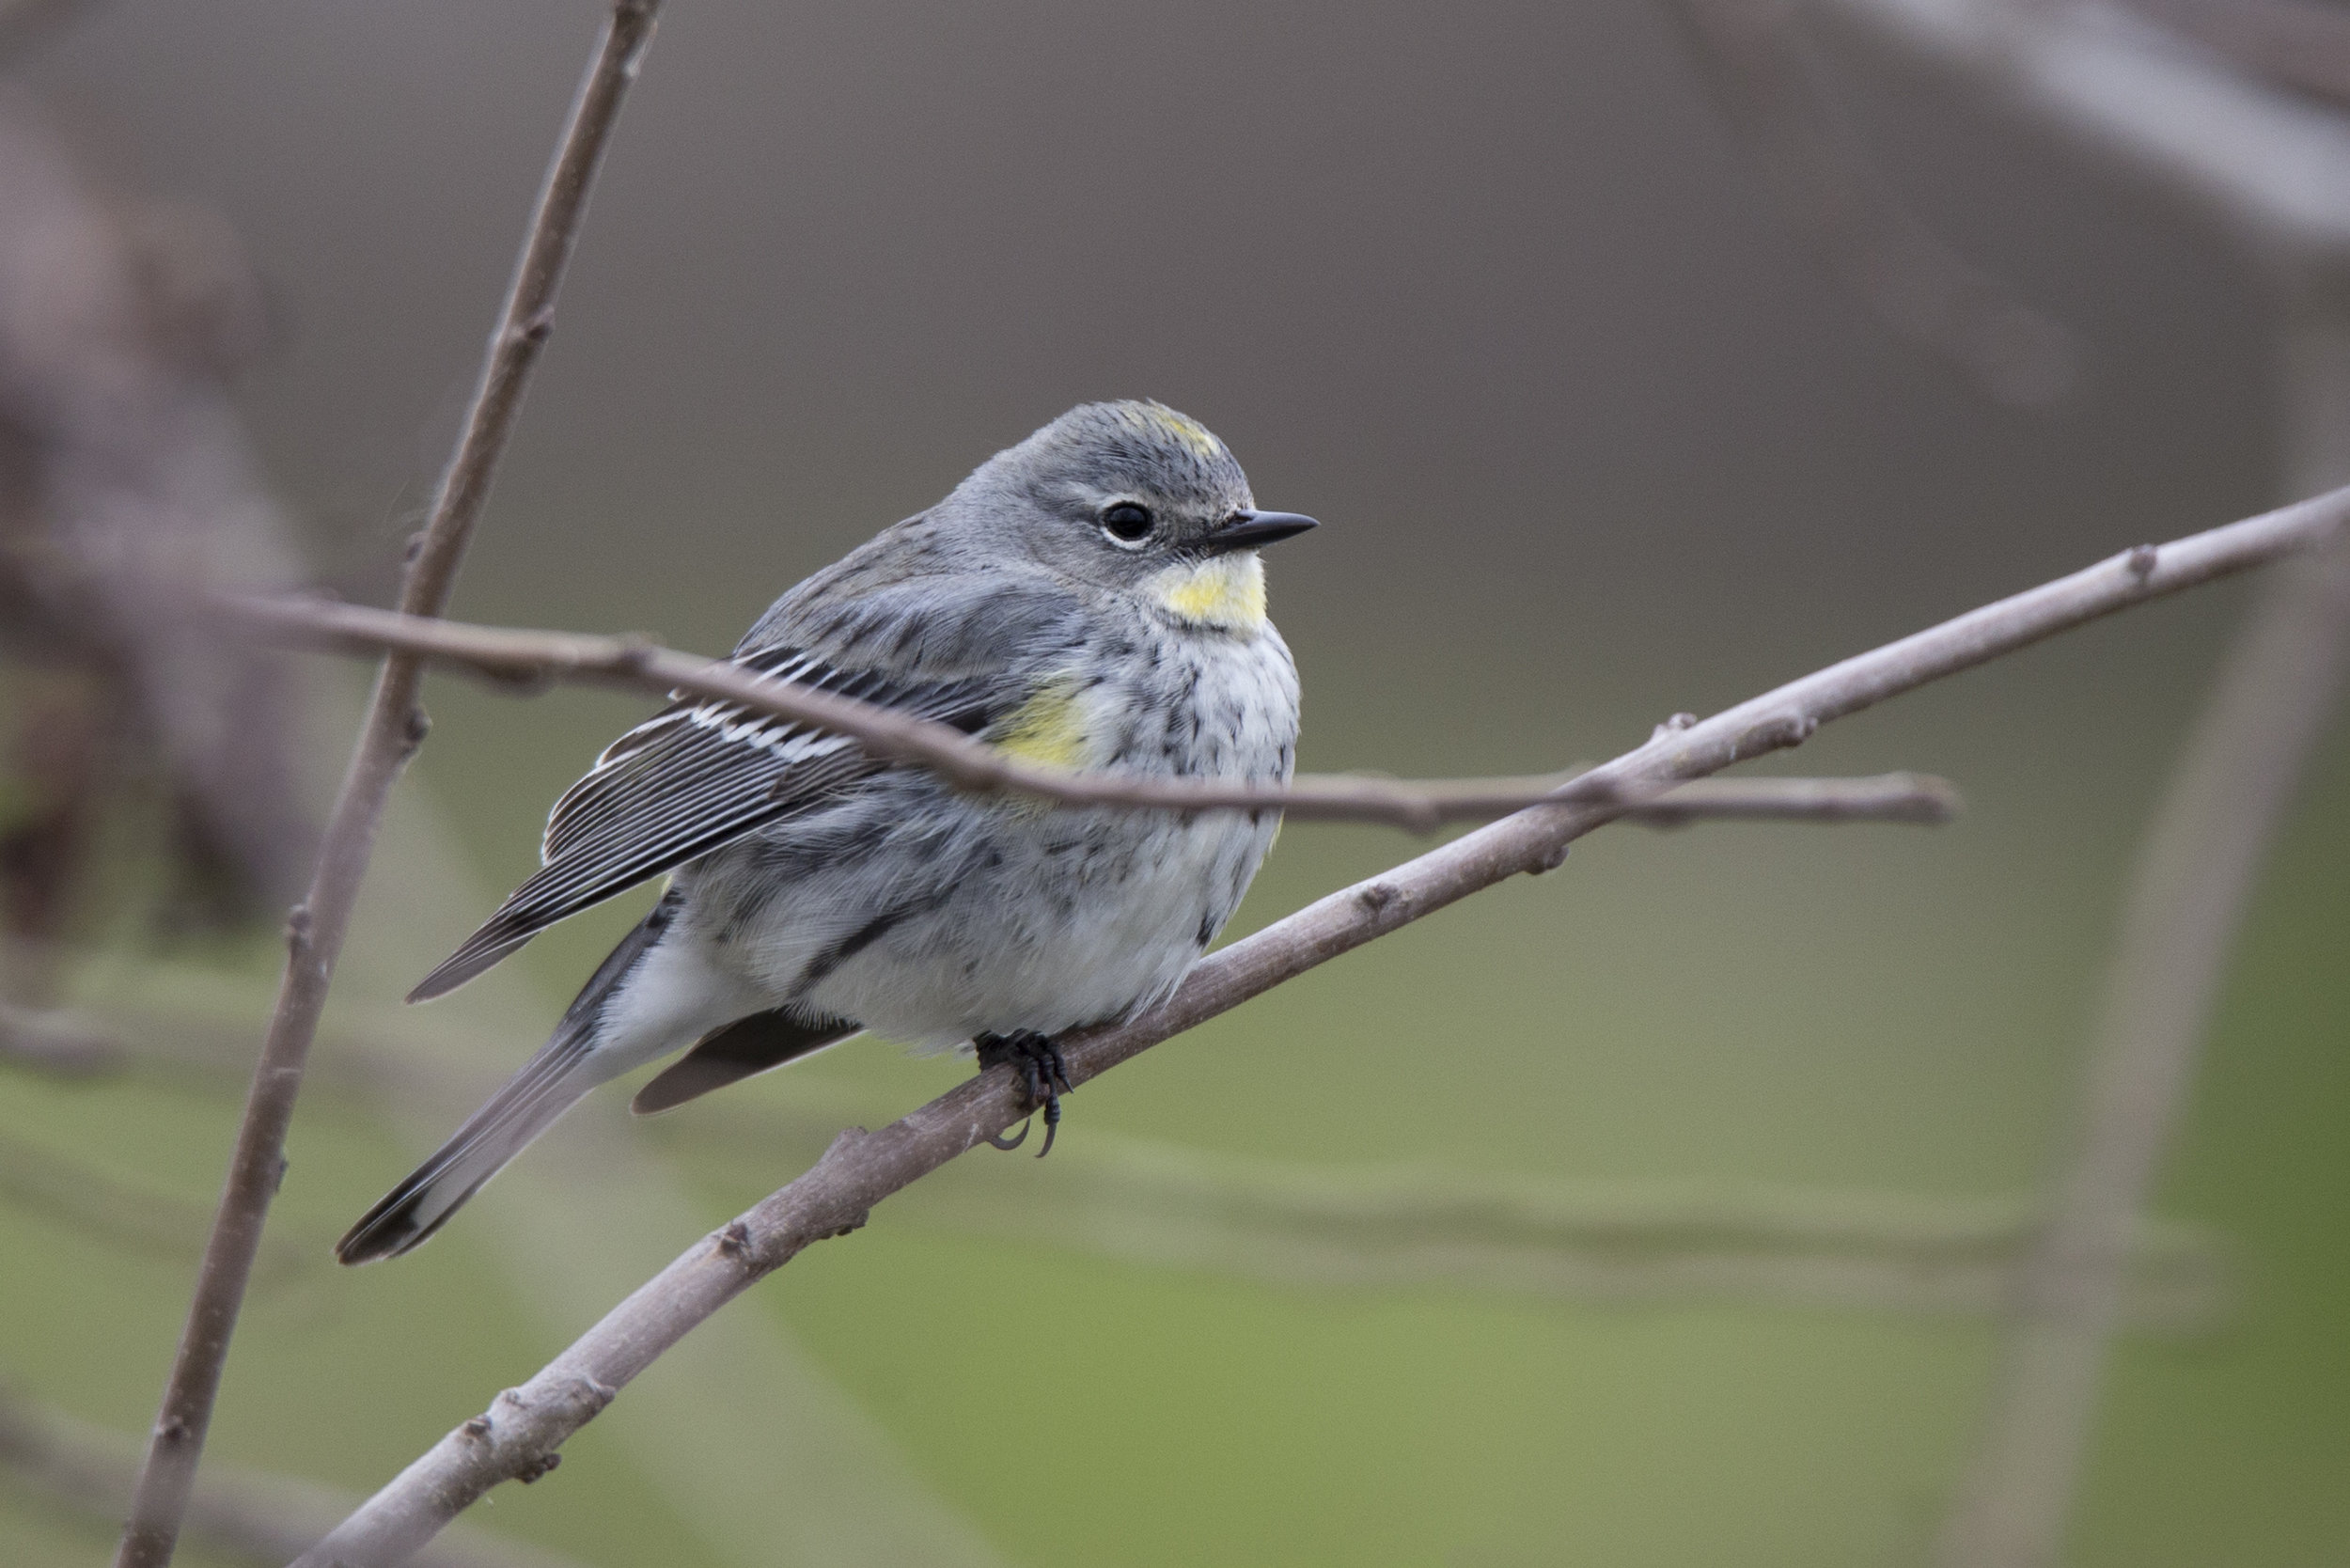 yellowrumpedwarbler1.jpg